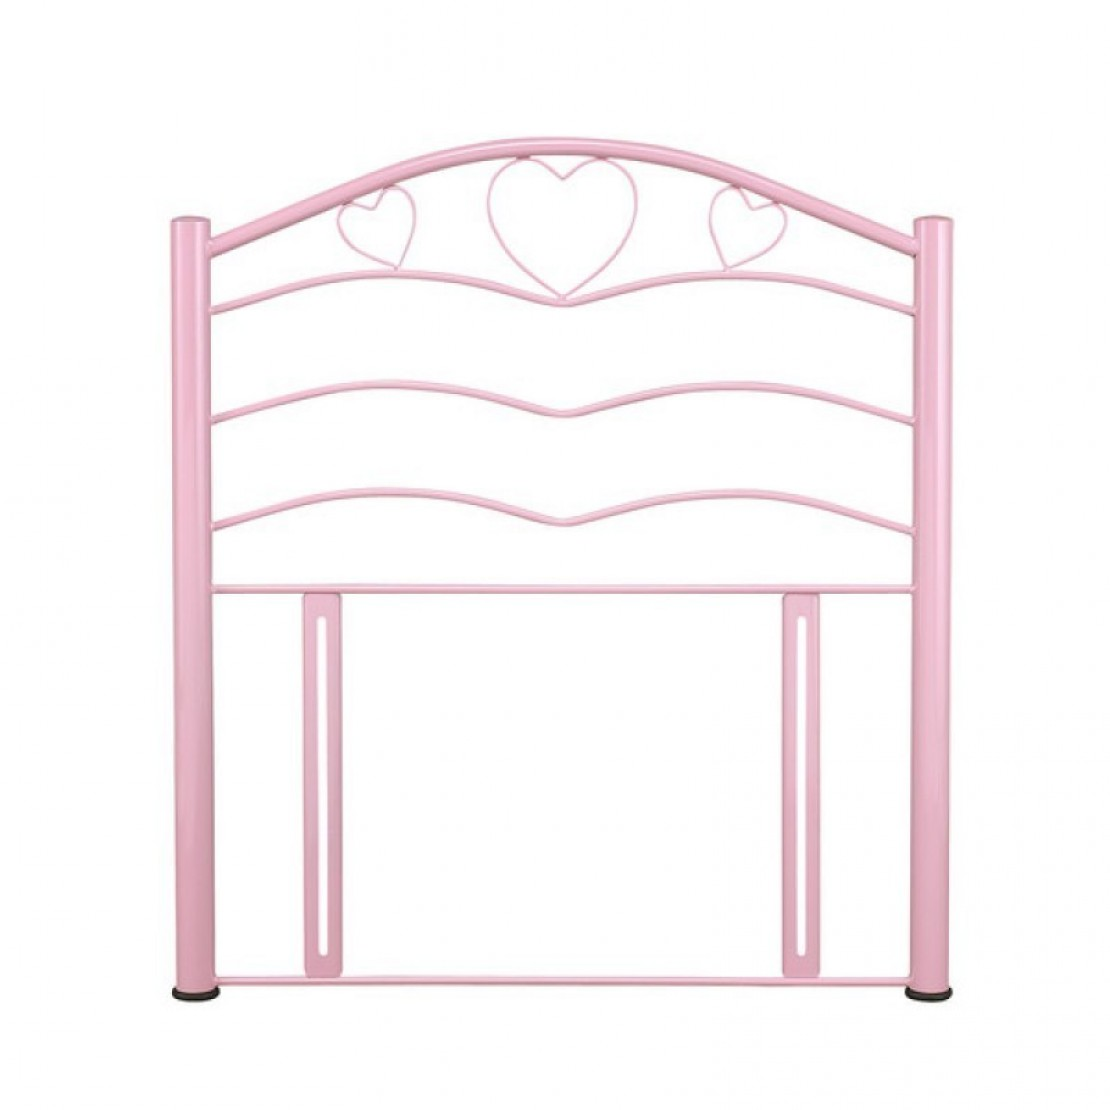 /_images/product-photos/serene-furnishings-yasmin-pink-floor-standing-a.jpg